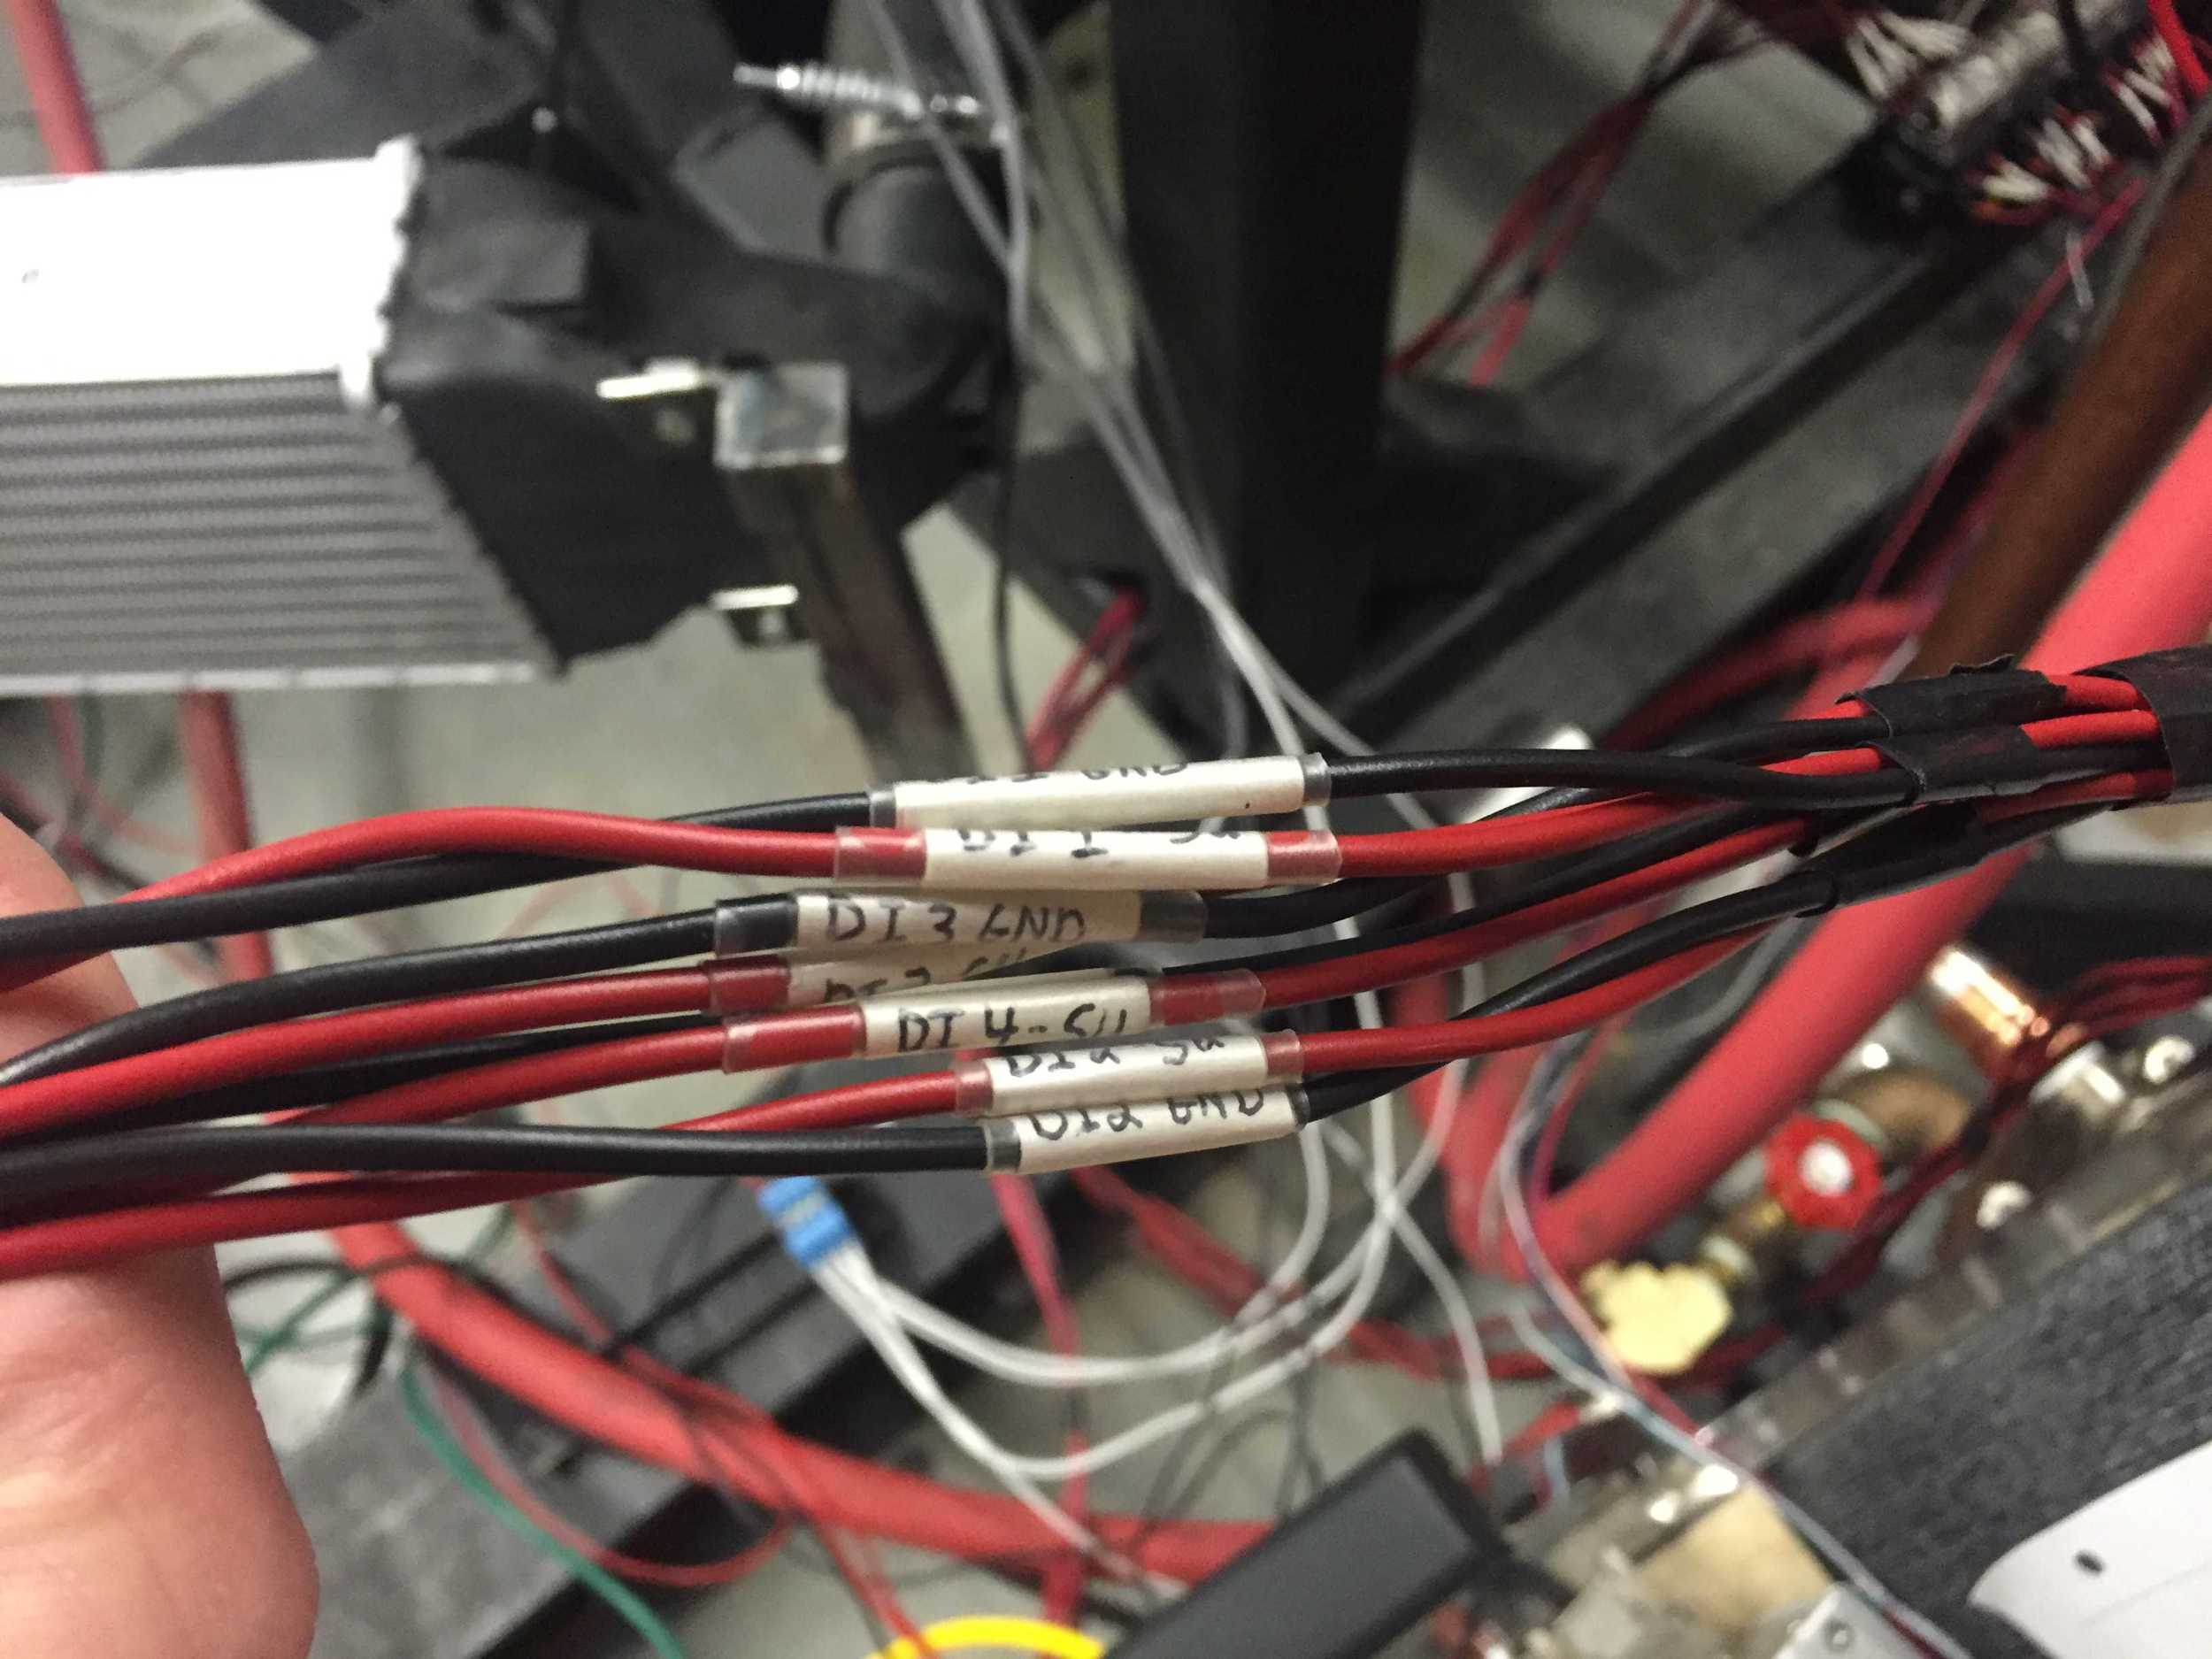 Direct injector wires.